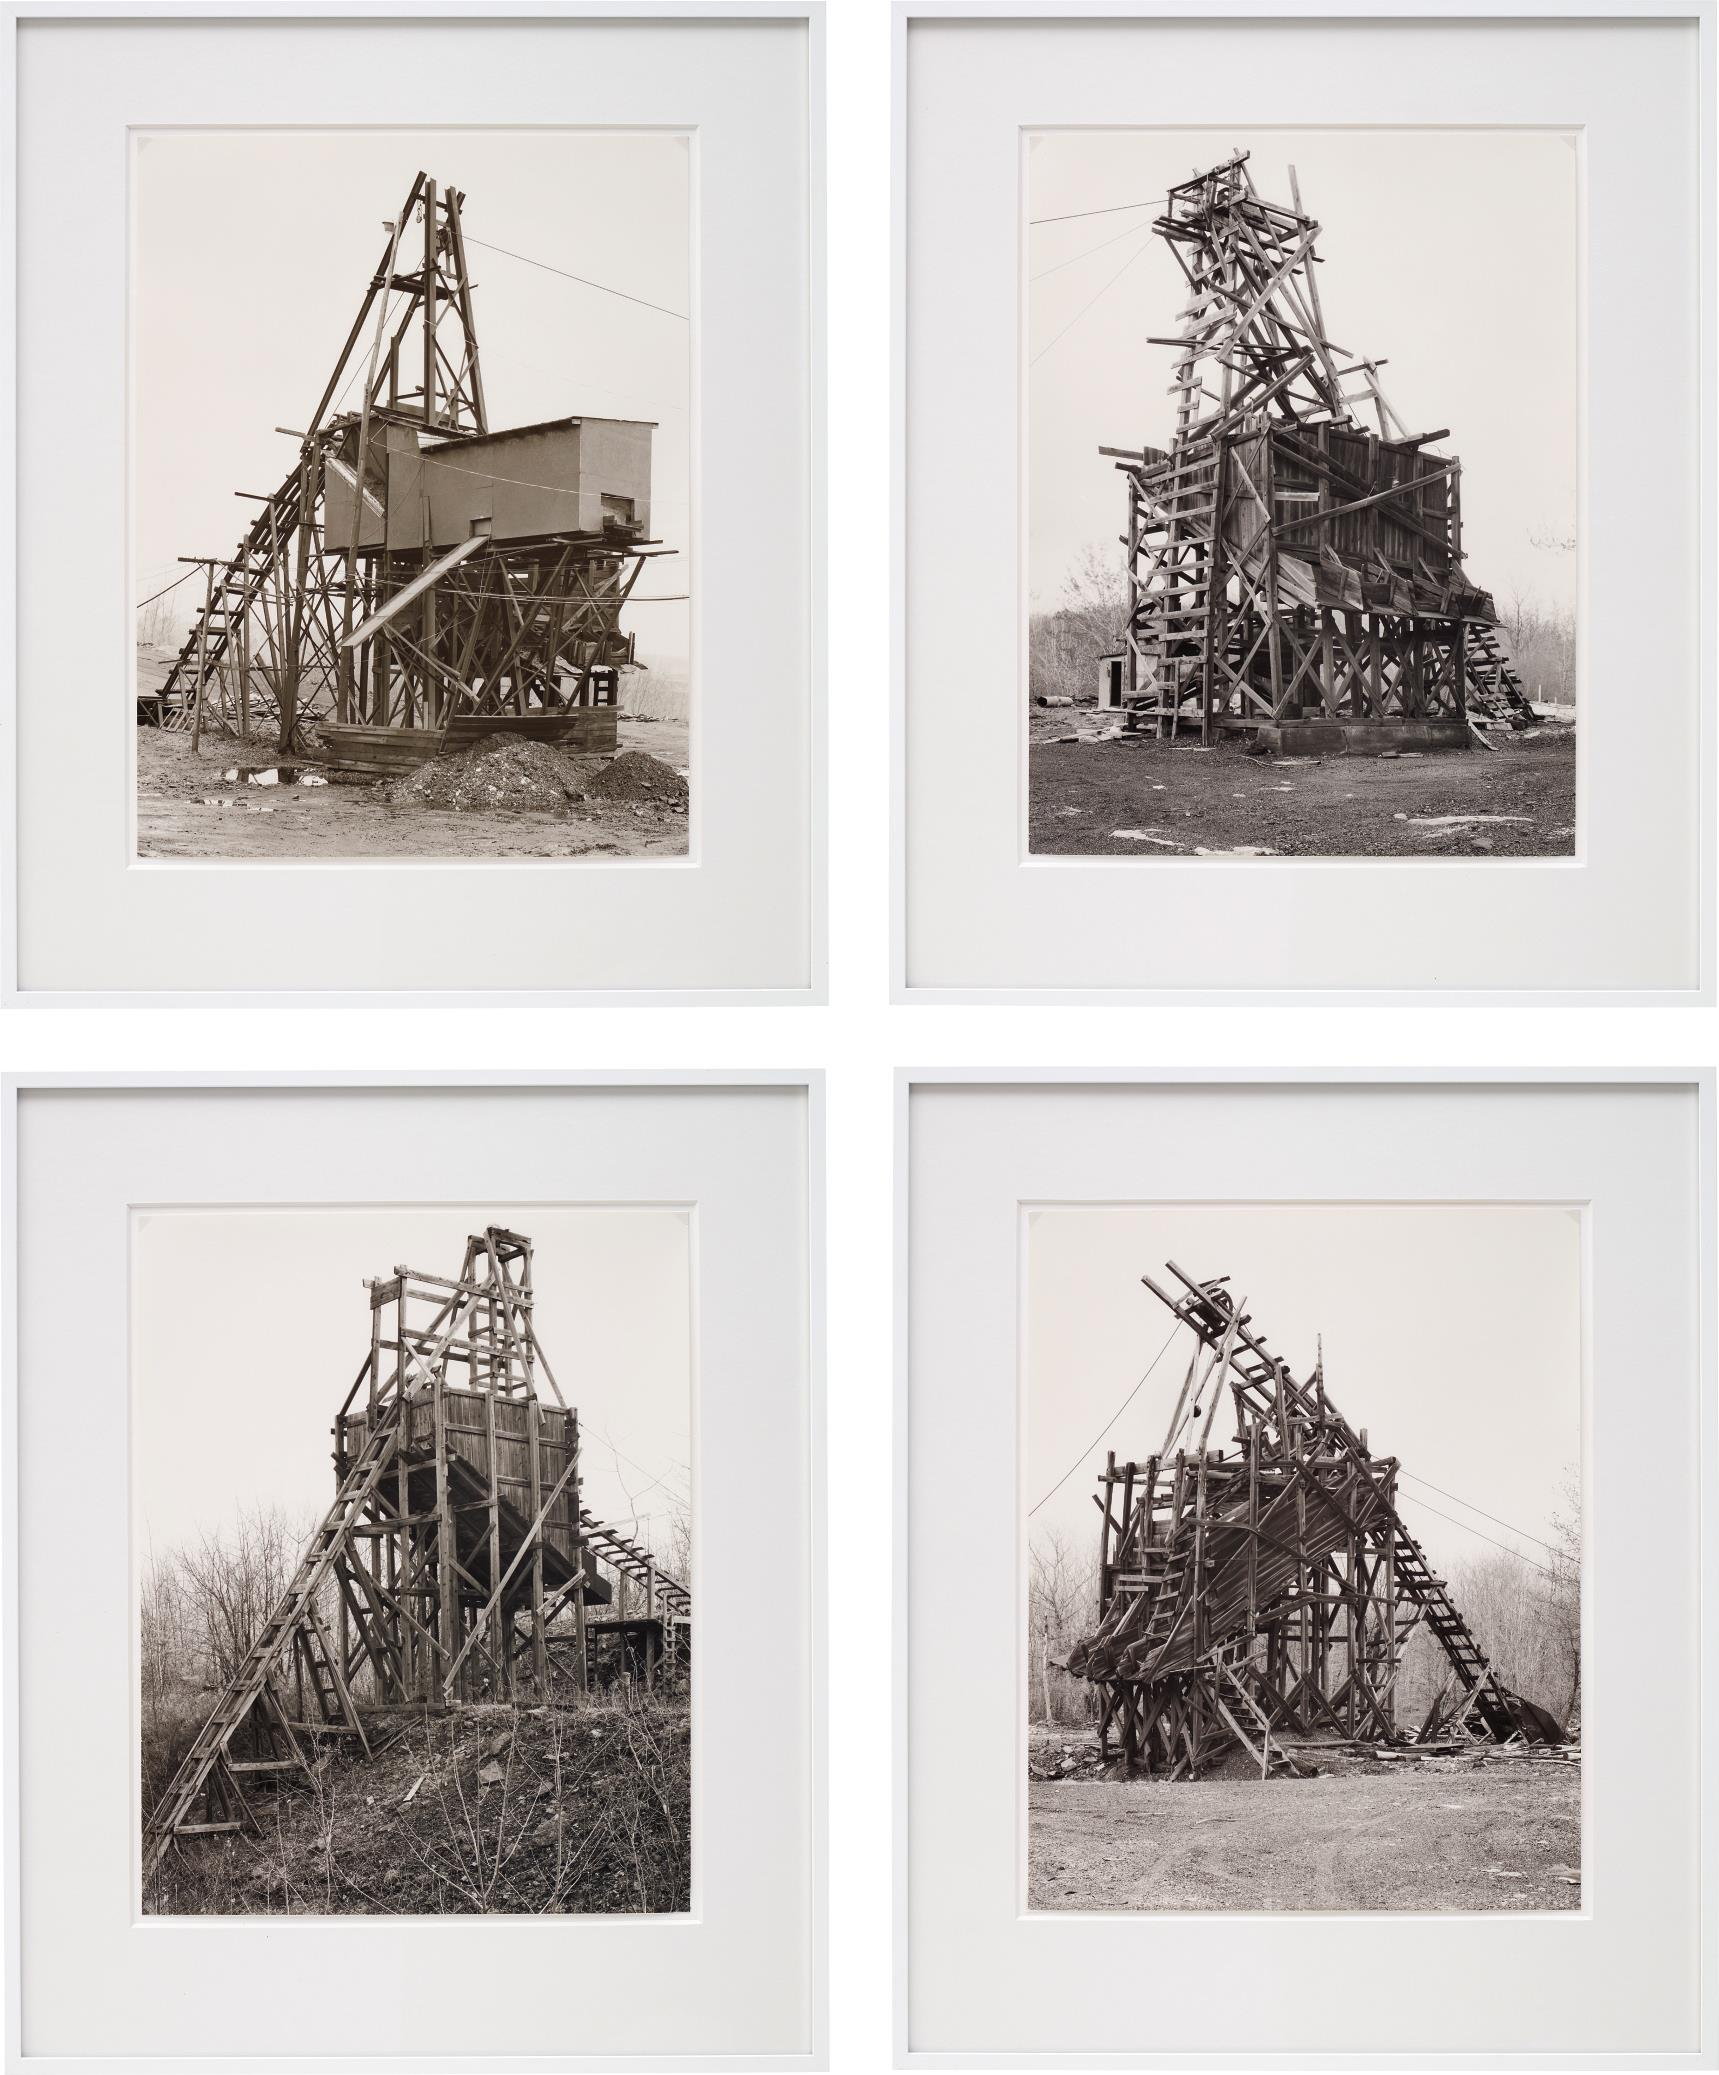 Bernd and Hilla Becher-Four works: (i) Zimmermann Coal Co., Ravine, Schuylkill Country; (ii) Scade Coal Co., Goodspring Mountains, Schuylkill Country; (iii) Scheib & Walacavage, No. 2, Joliett, Schuykill Country; (iv) Minnich Coal Co., Goodspring Mountains, Schuykill Country-1983